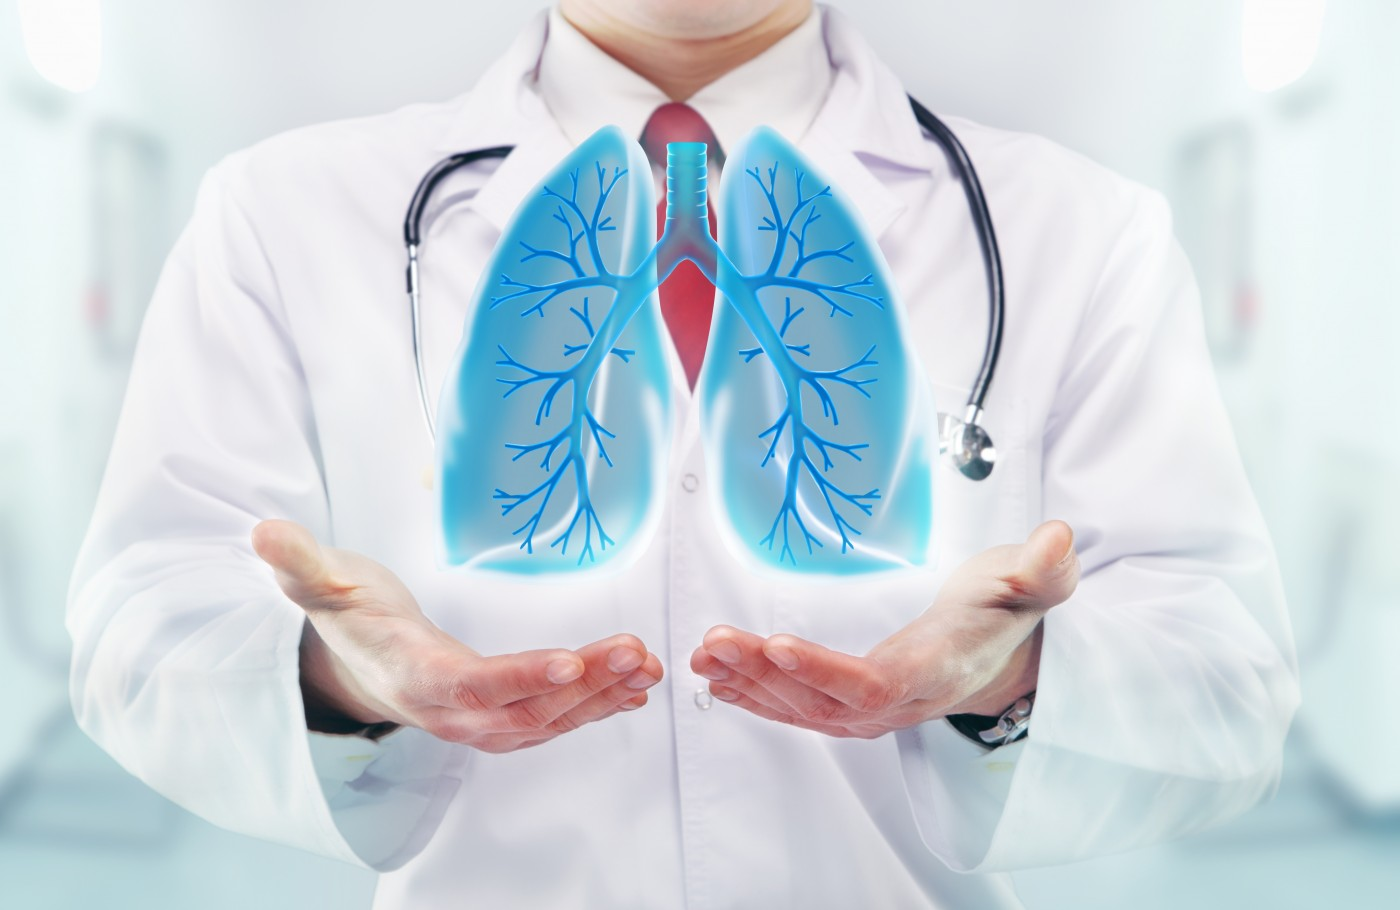 ESC and ERS Cowrite New Pulmonary Hypertension Guidelines with Novel Treatment Algorithms